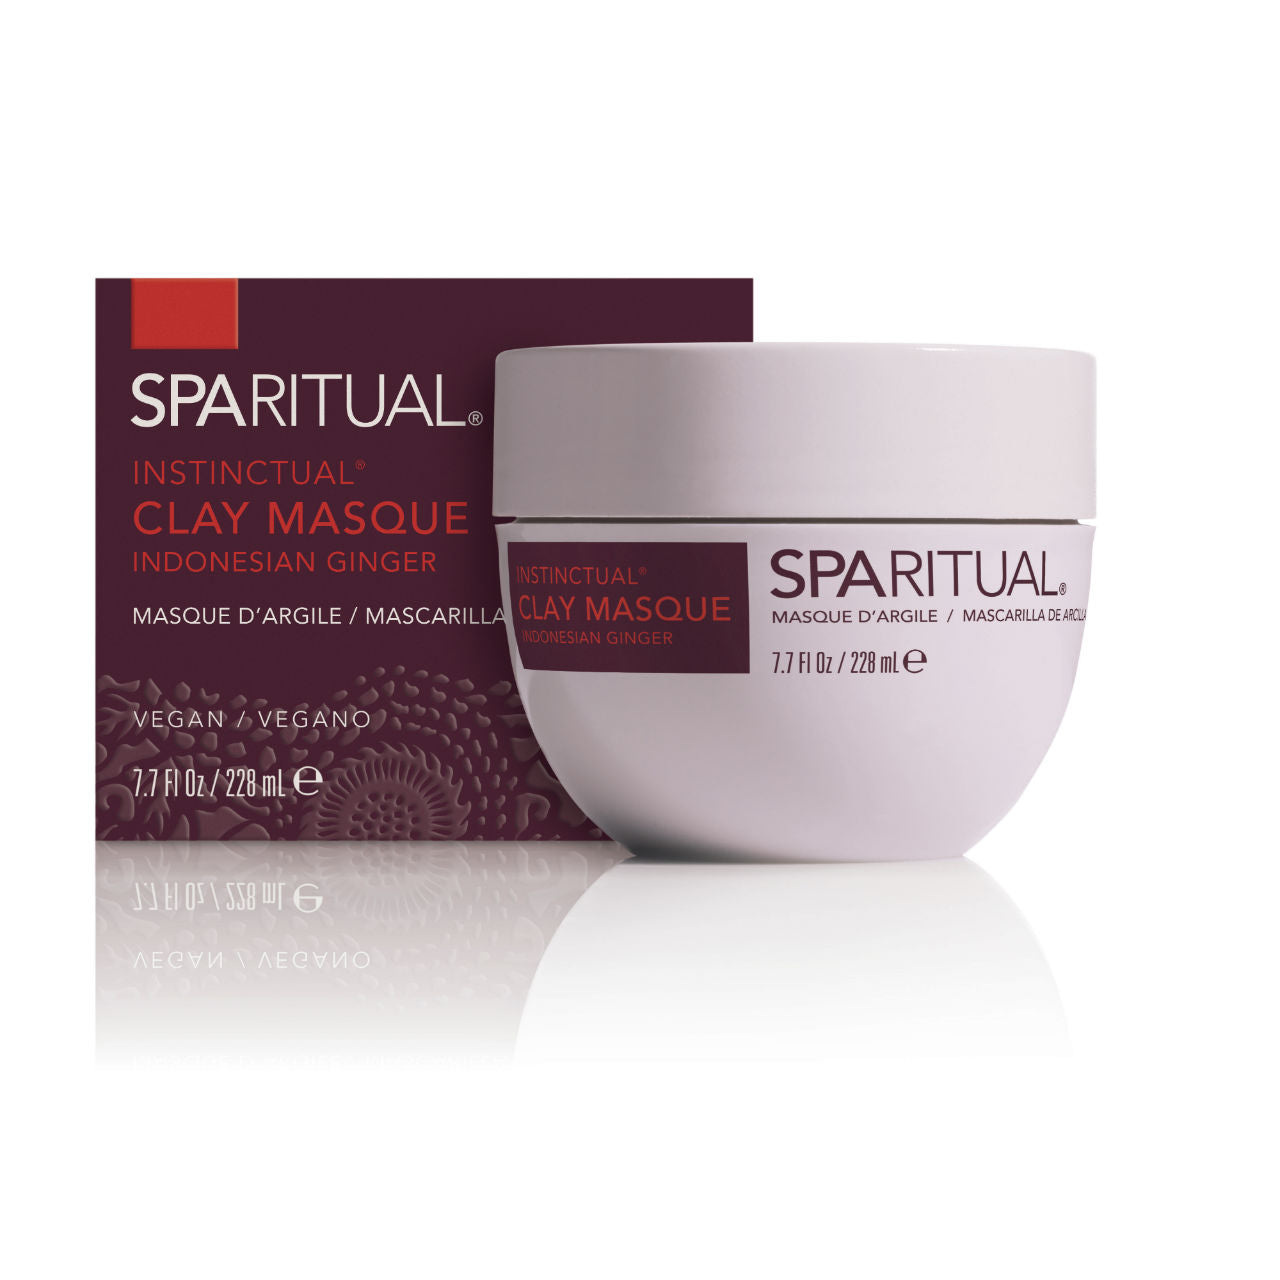 SPARITUAL Instinctual® Clay Masque Box